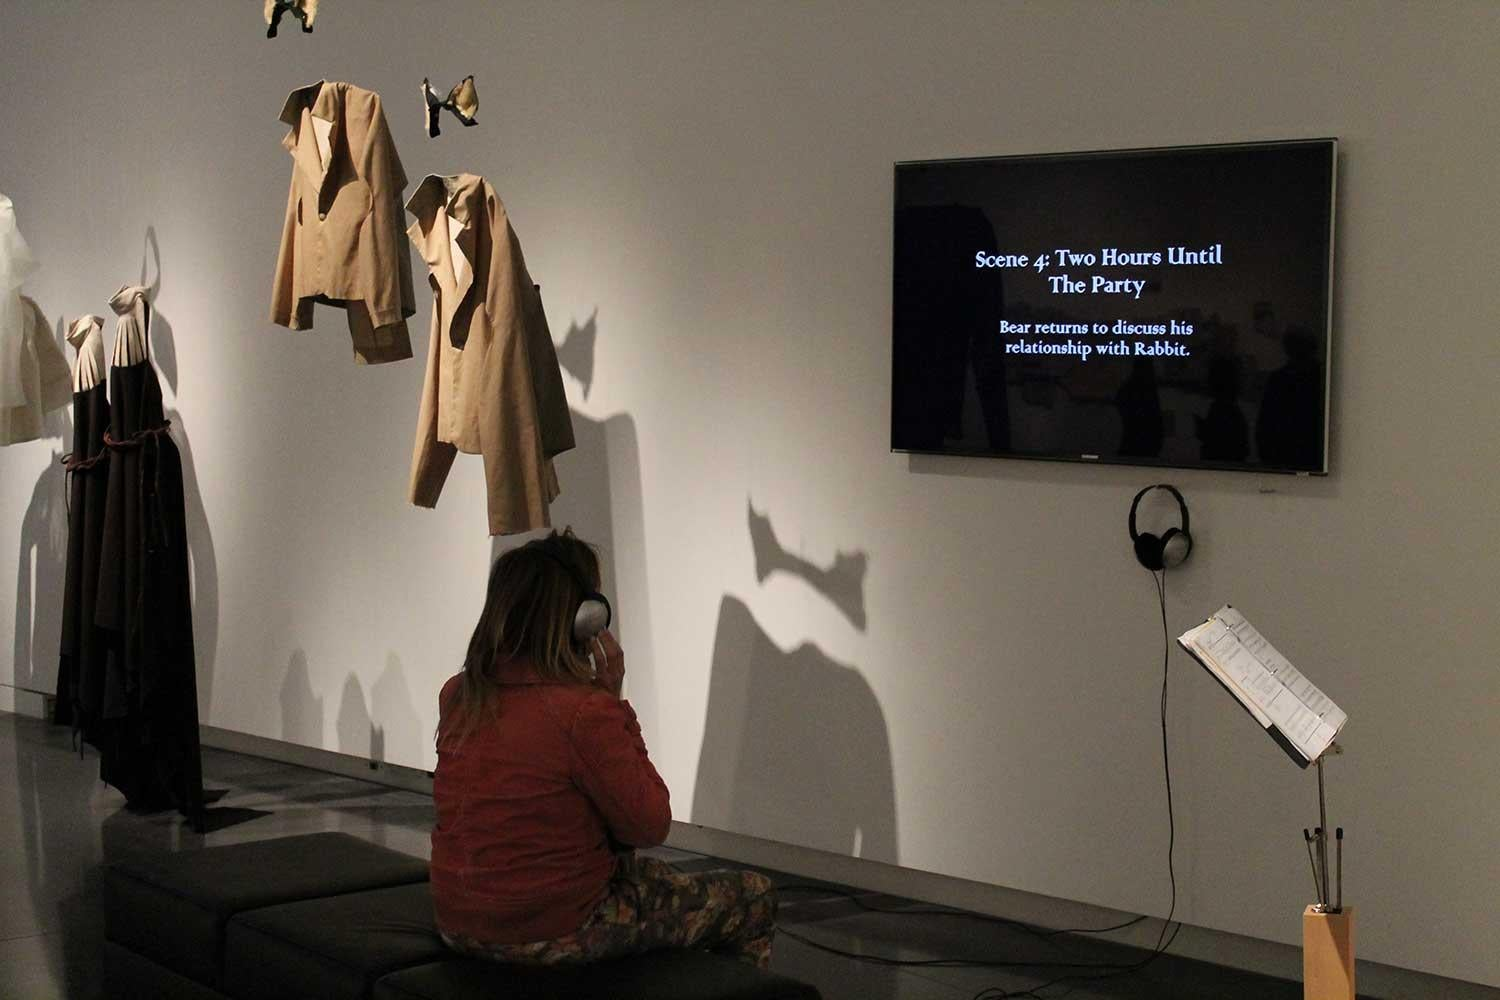 clothing and a screen hung on a wall as a part of an installation